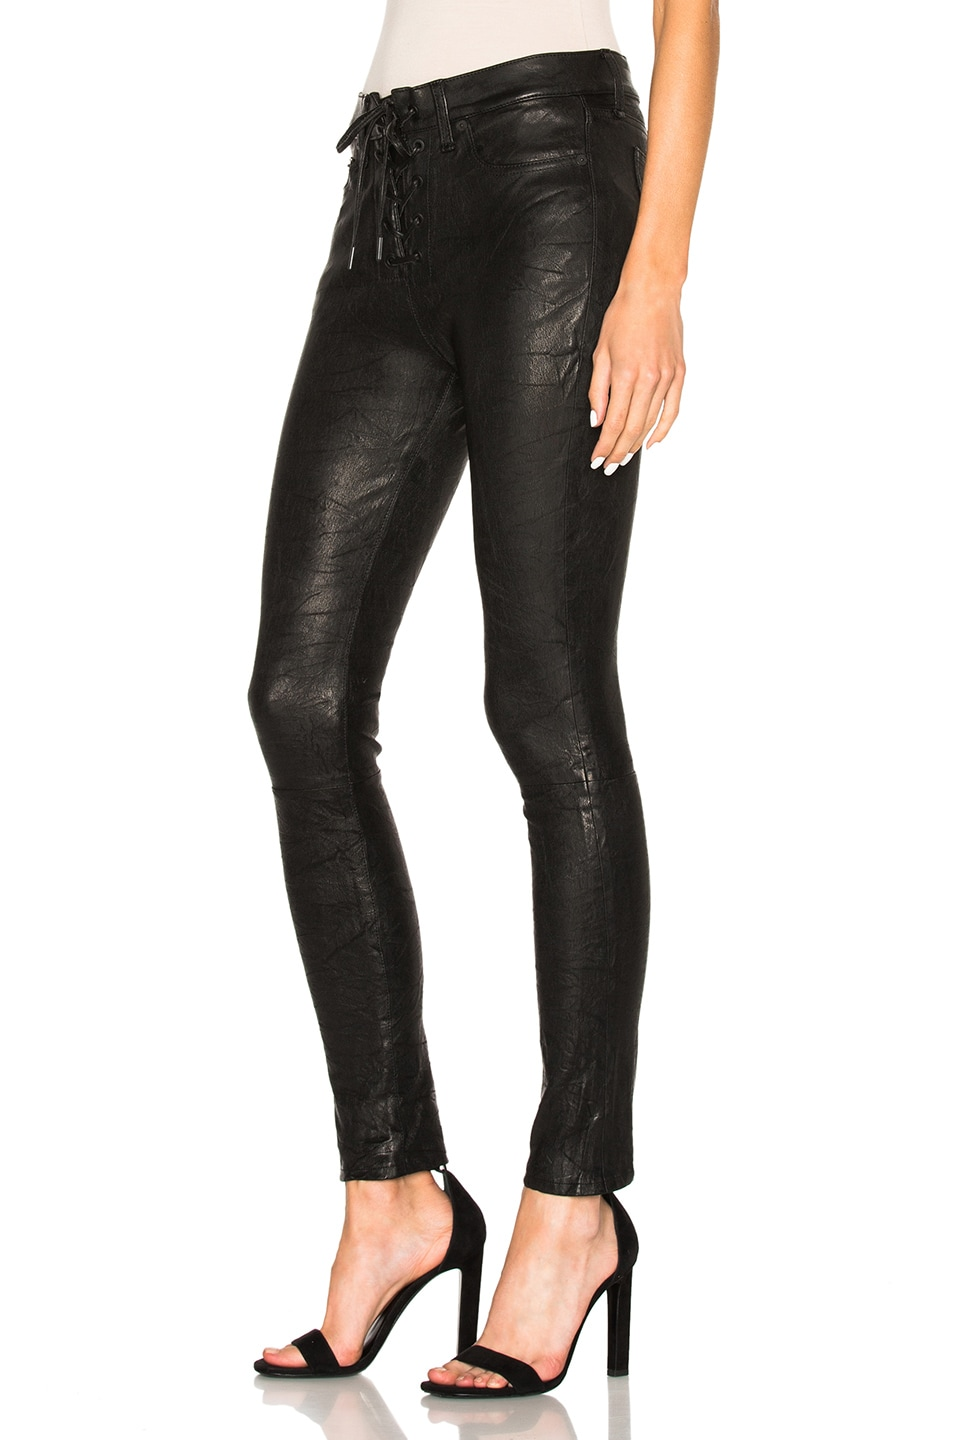 8b18ecff1cb2a Image 2 of rag & bone/JEAN Lace Up Leather Pants in Washed Black